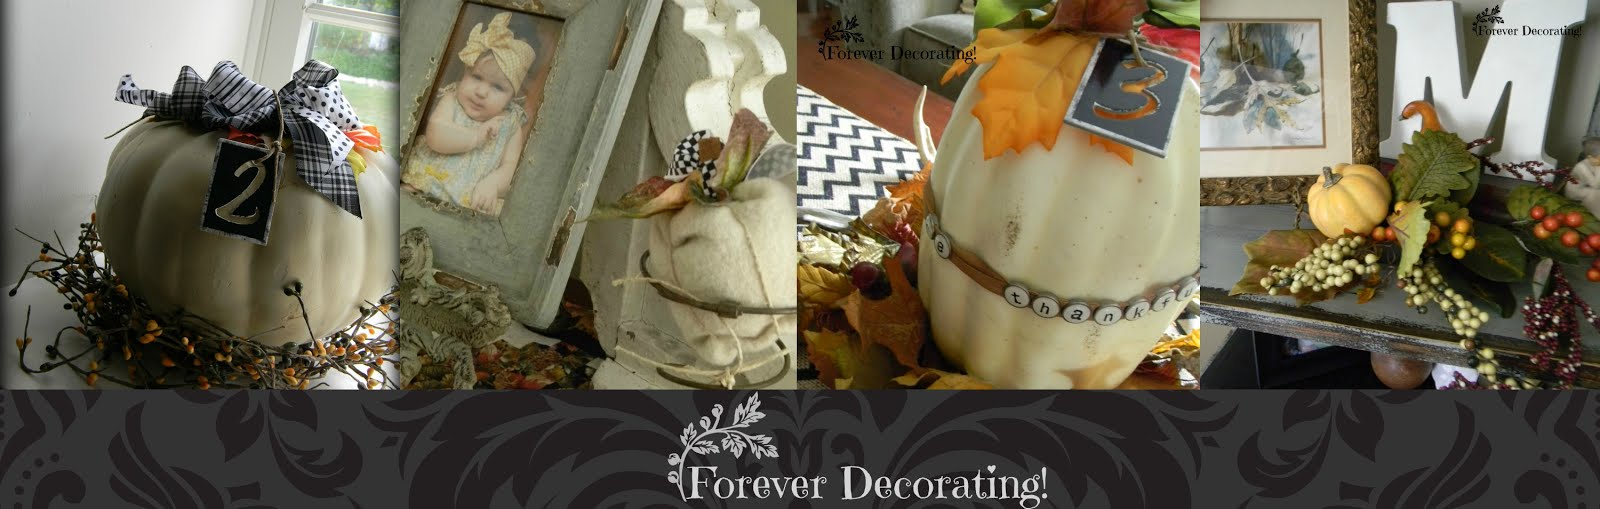 Forever Decorating!